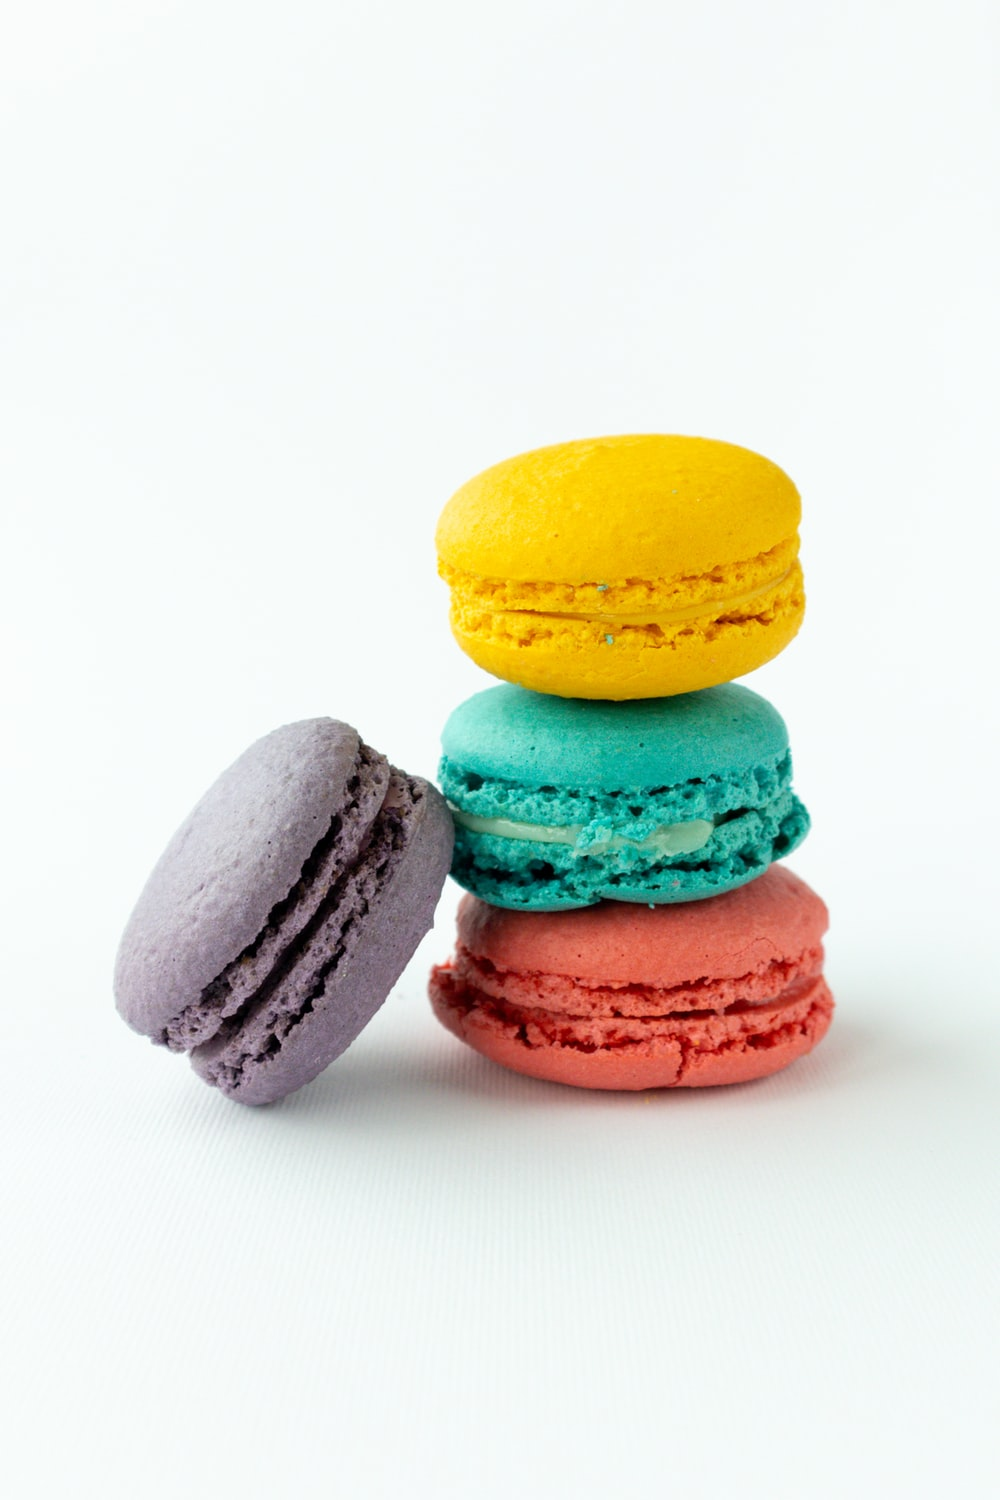 3 yellow pink and green macaroons